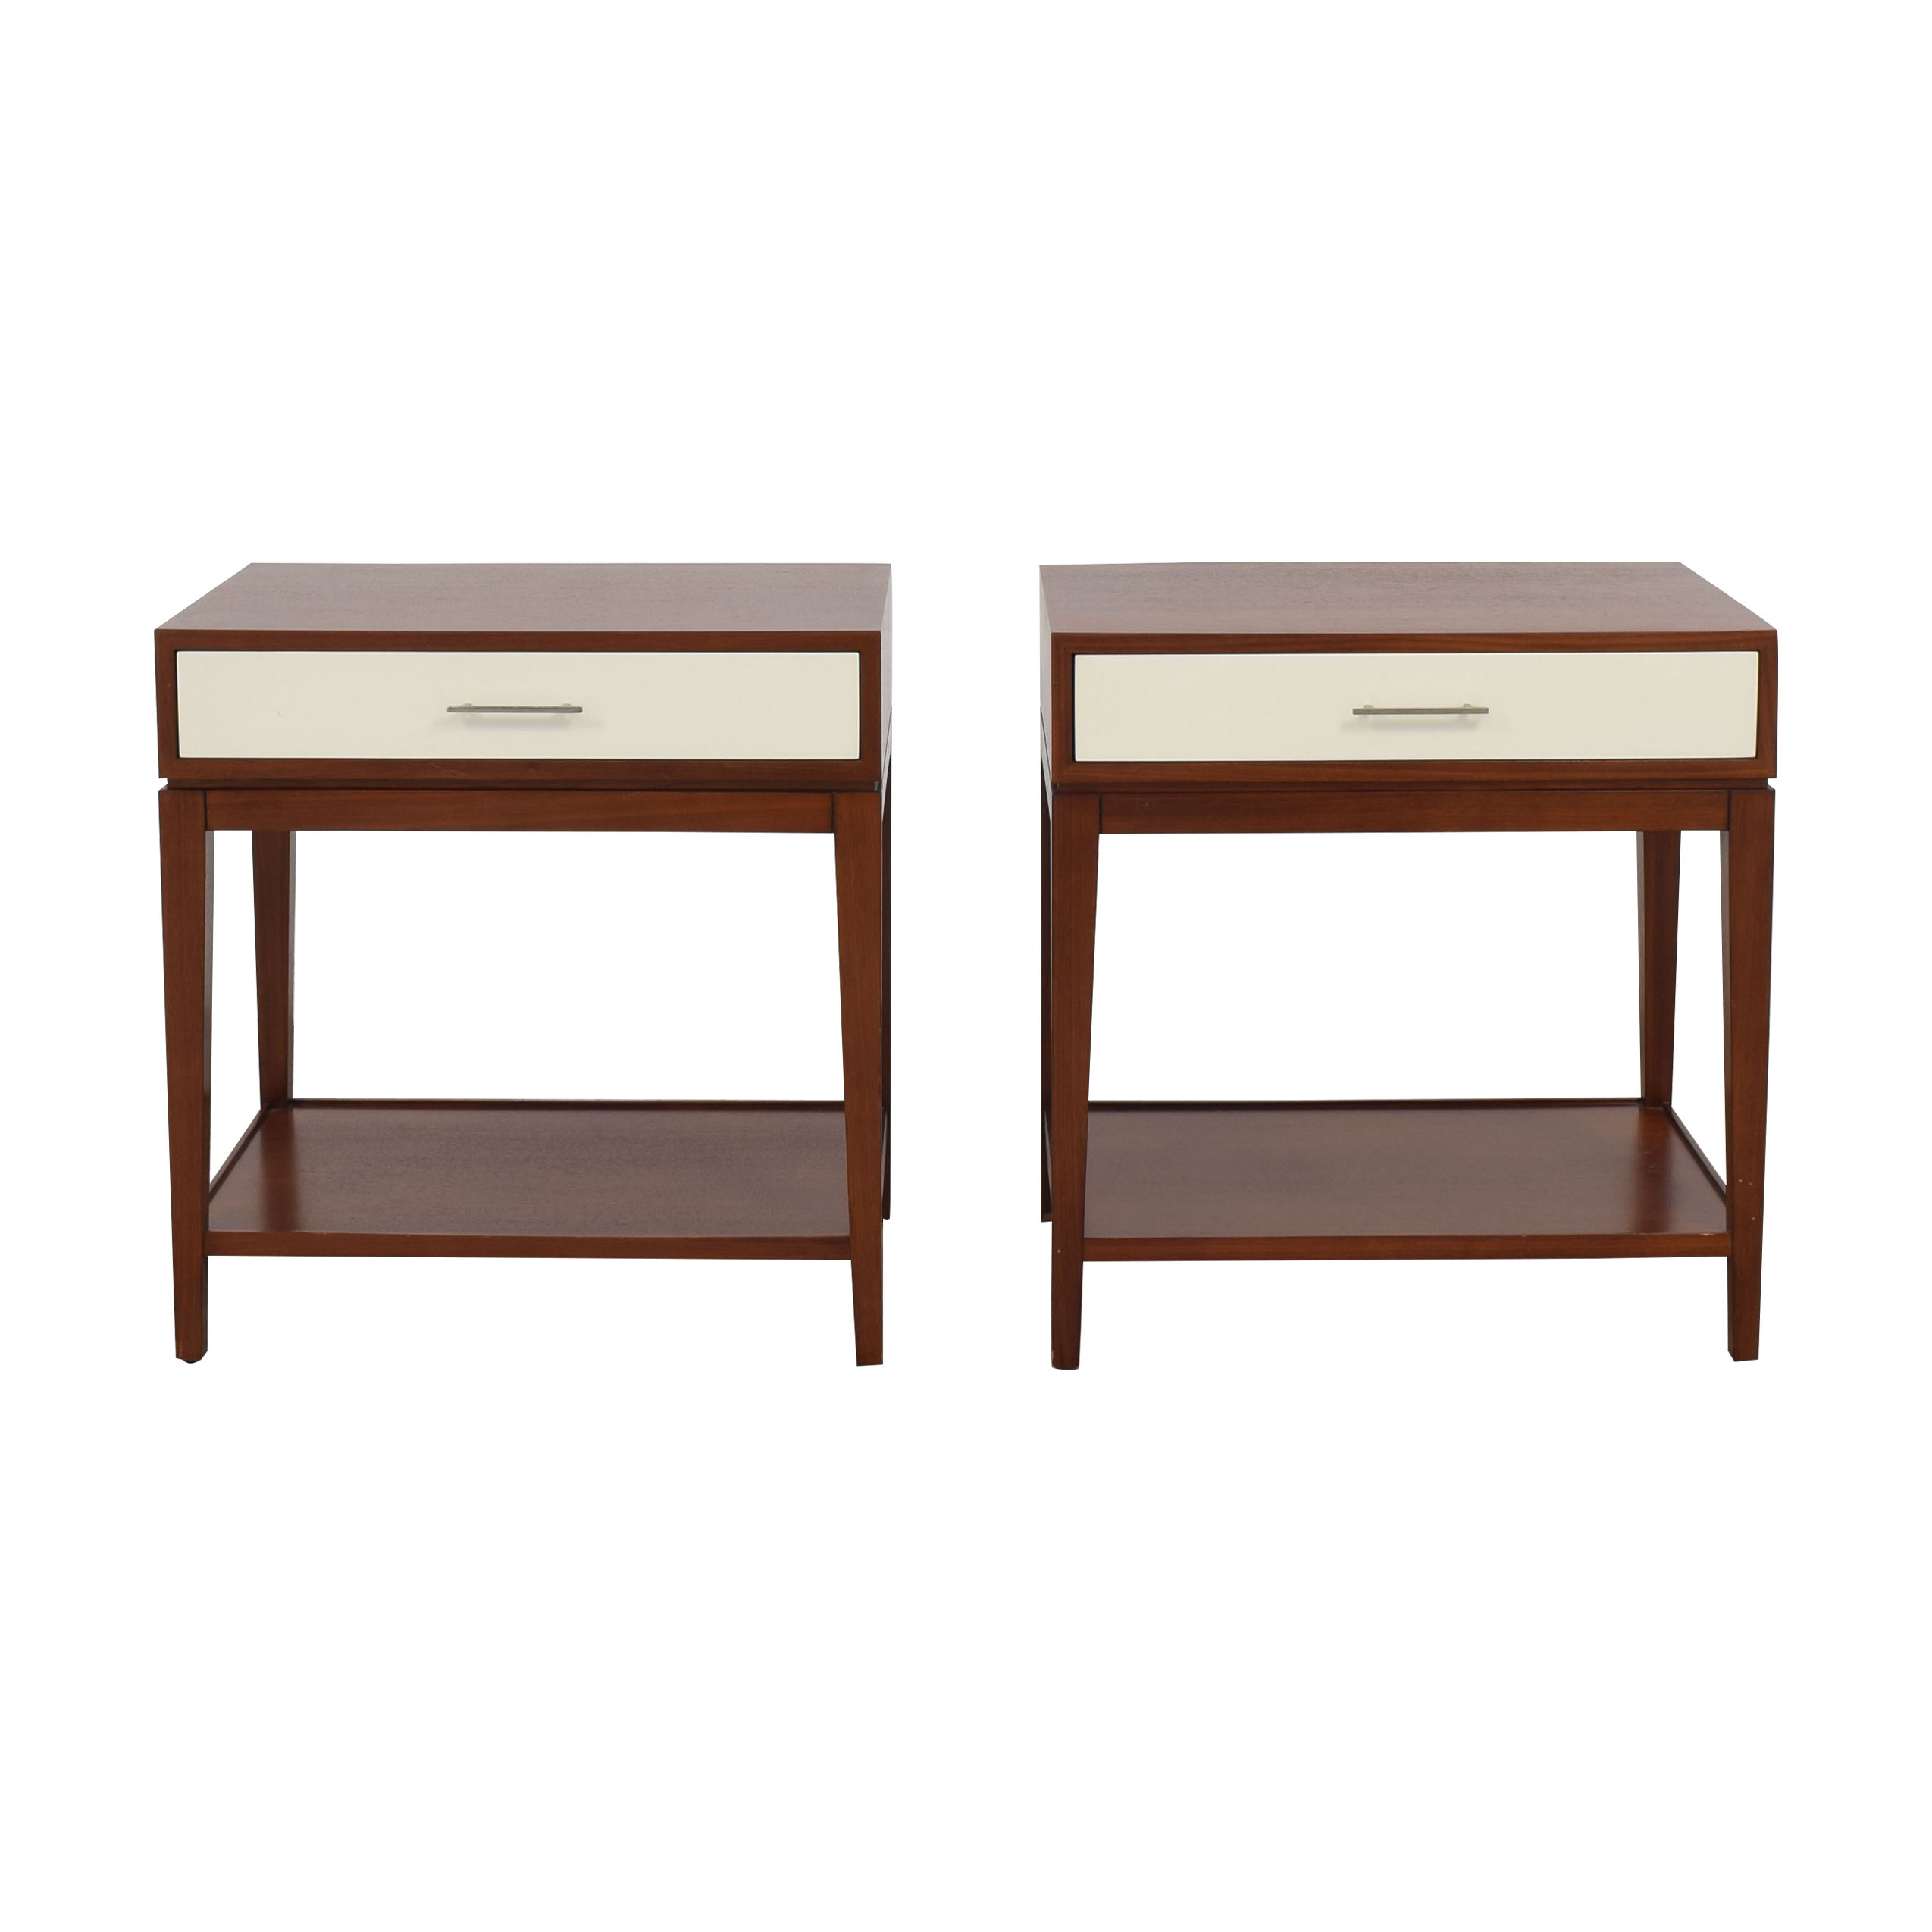 Mitchell Gold + Bob Williams Mitchell Gold + Bob Williams Nightstands dimensions